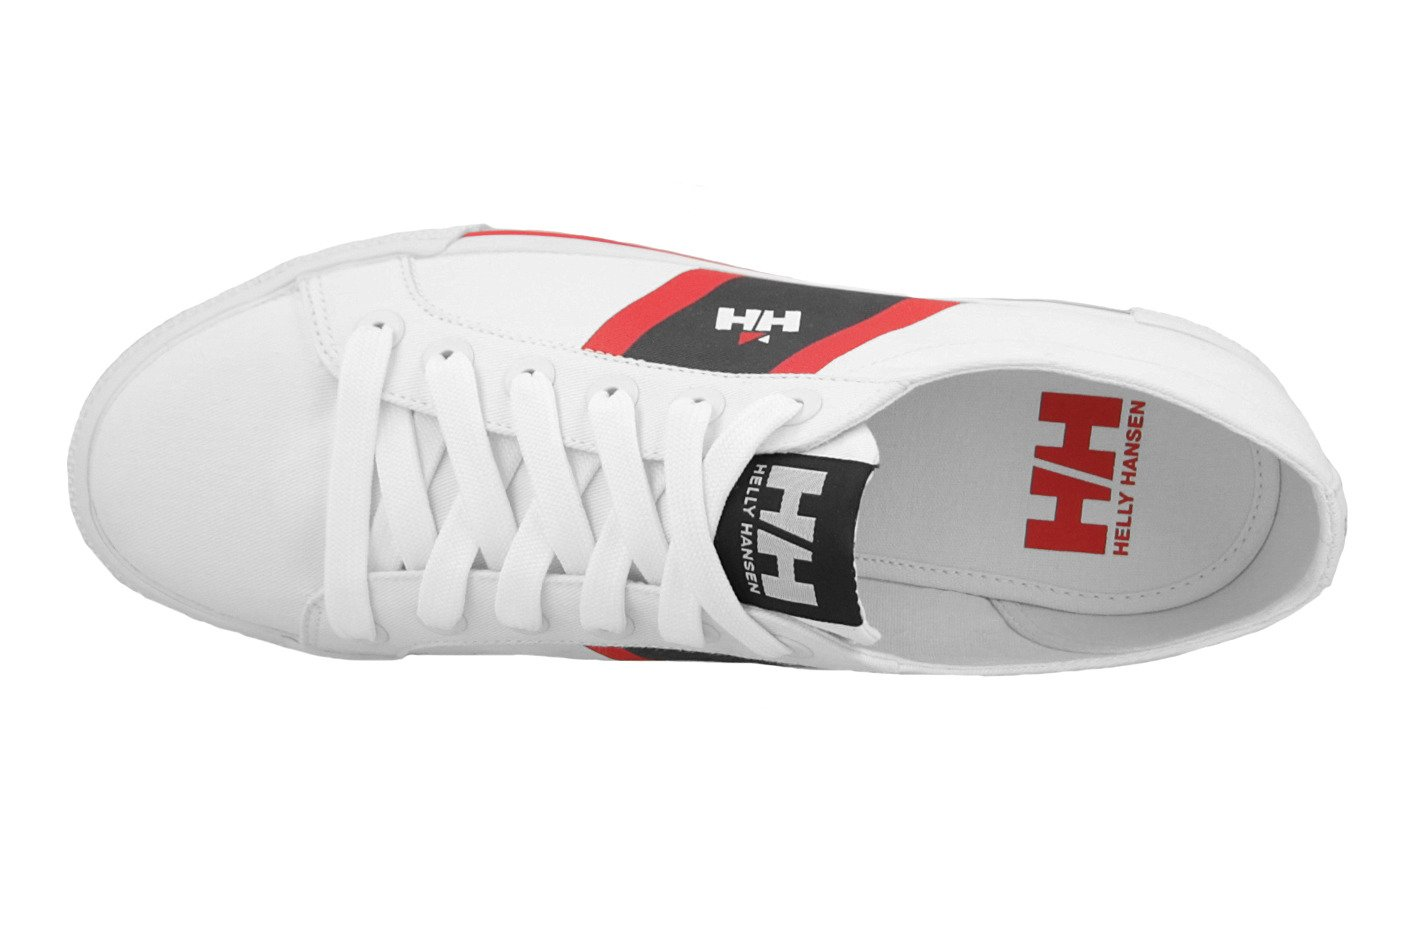 http://yessport.pl/pol_pl_BUTY-HELLY-HANSEN-BERGE-VIKING-LOW-10764-001-7602_4.jpg